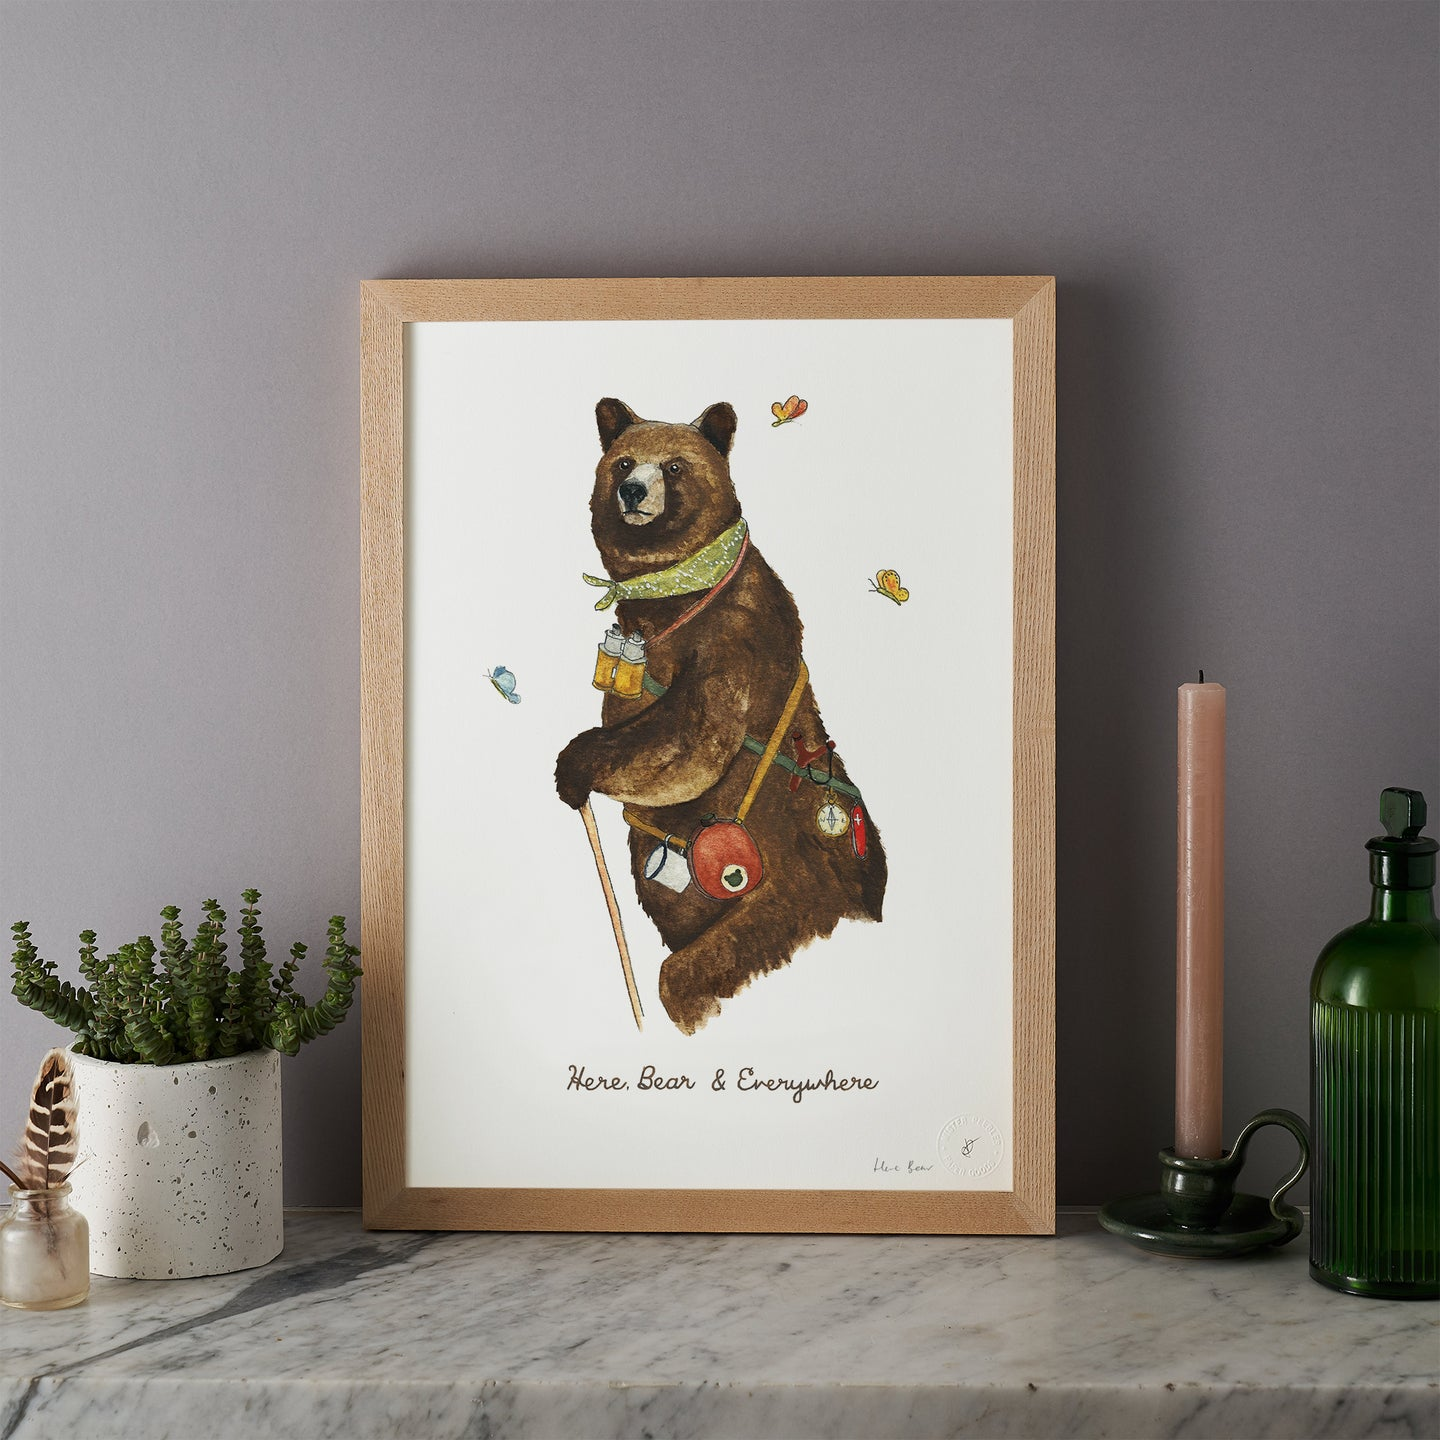 Here Bear and Everywhere Print